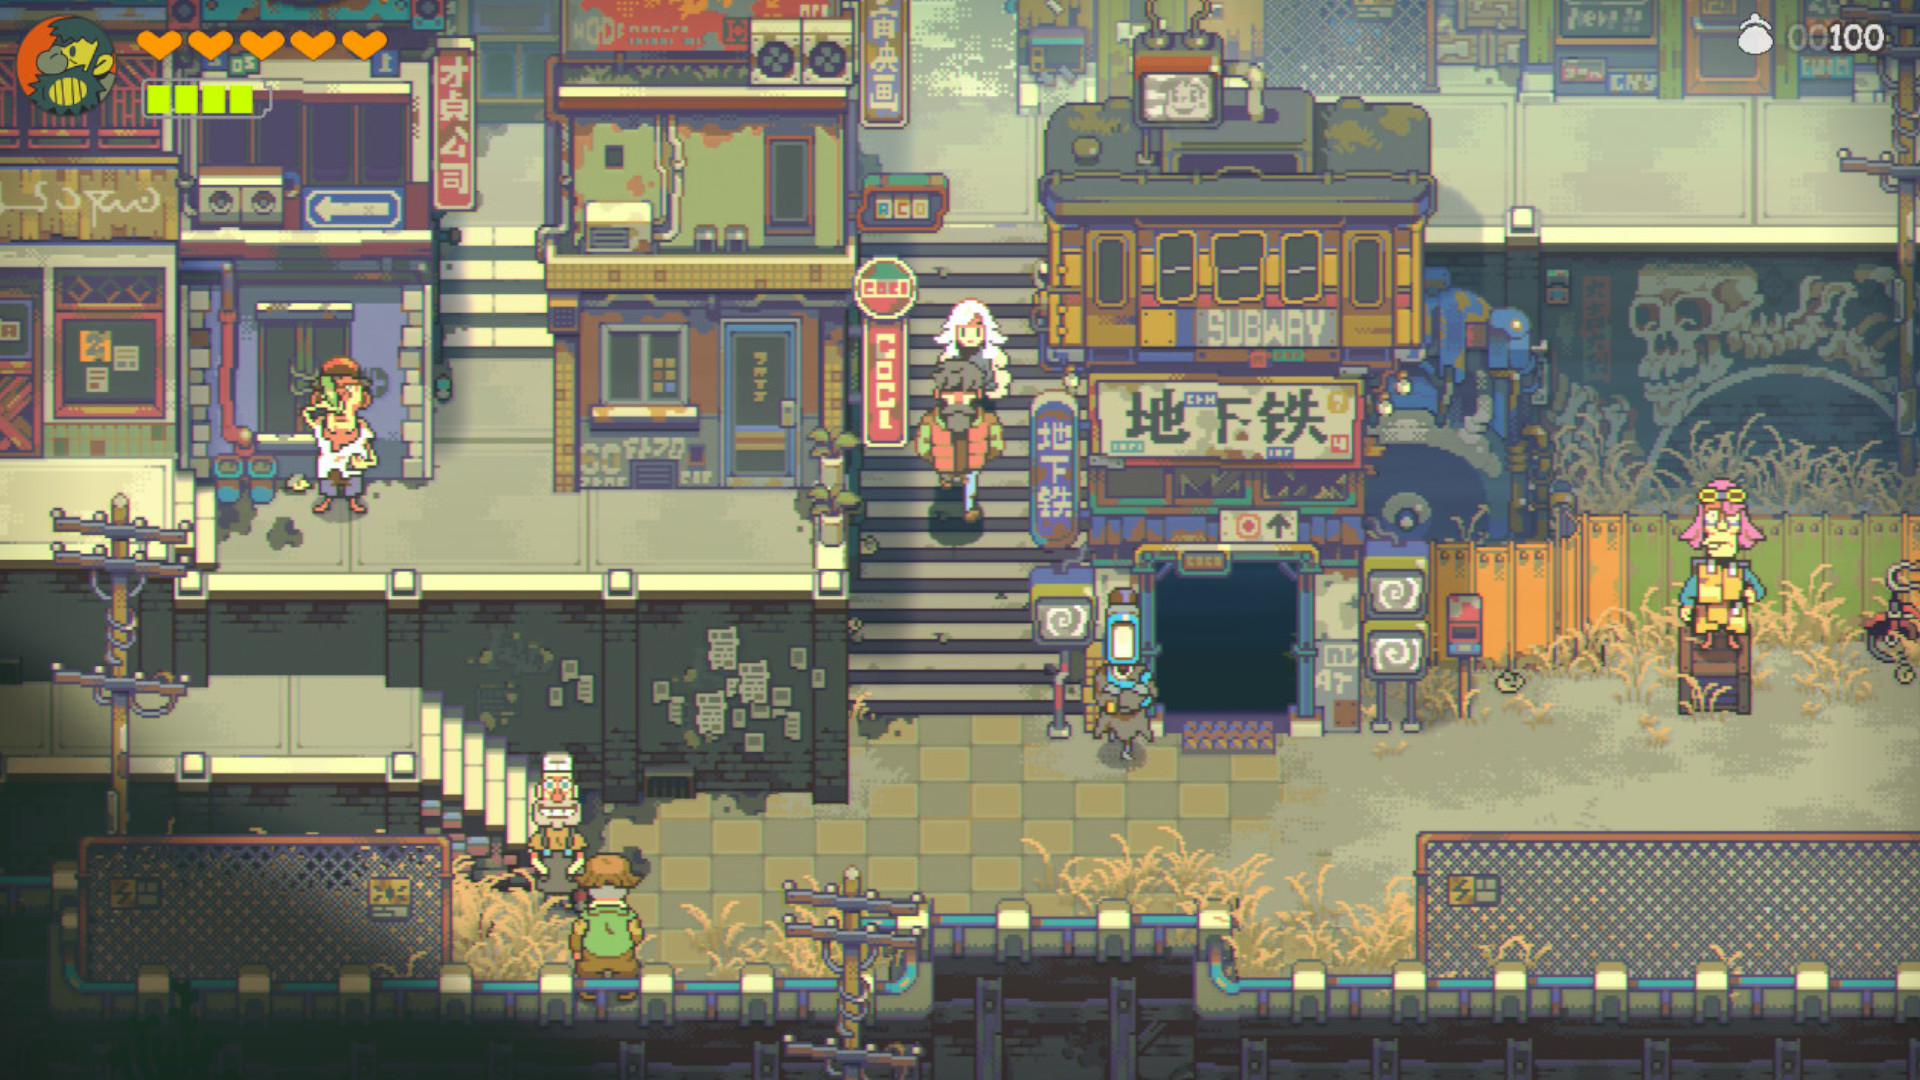 Zelda meets The Last of Us in Eastward, coming to Steam next month